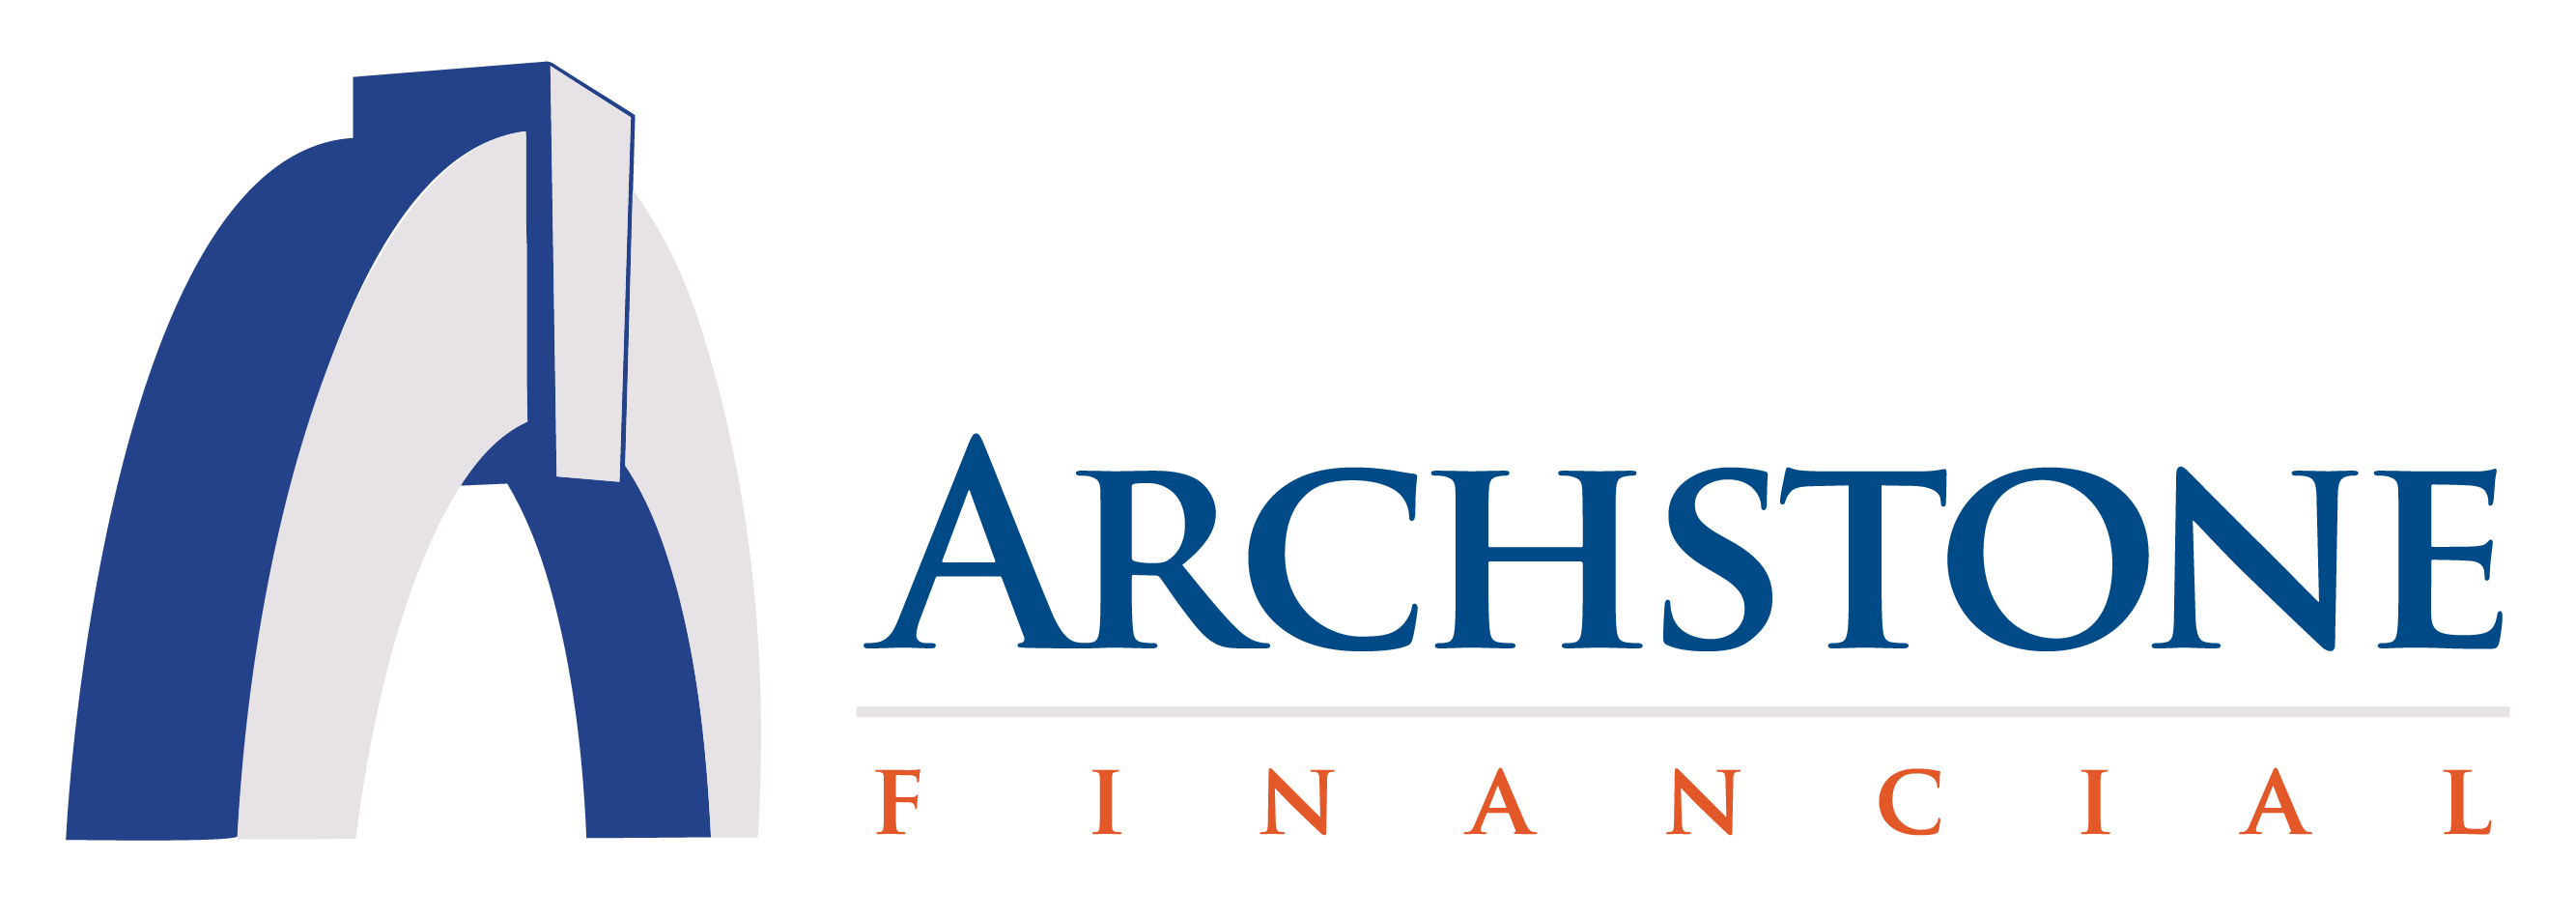 Archstone Financial